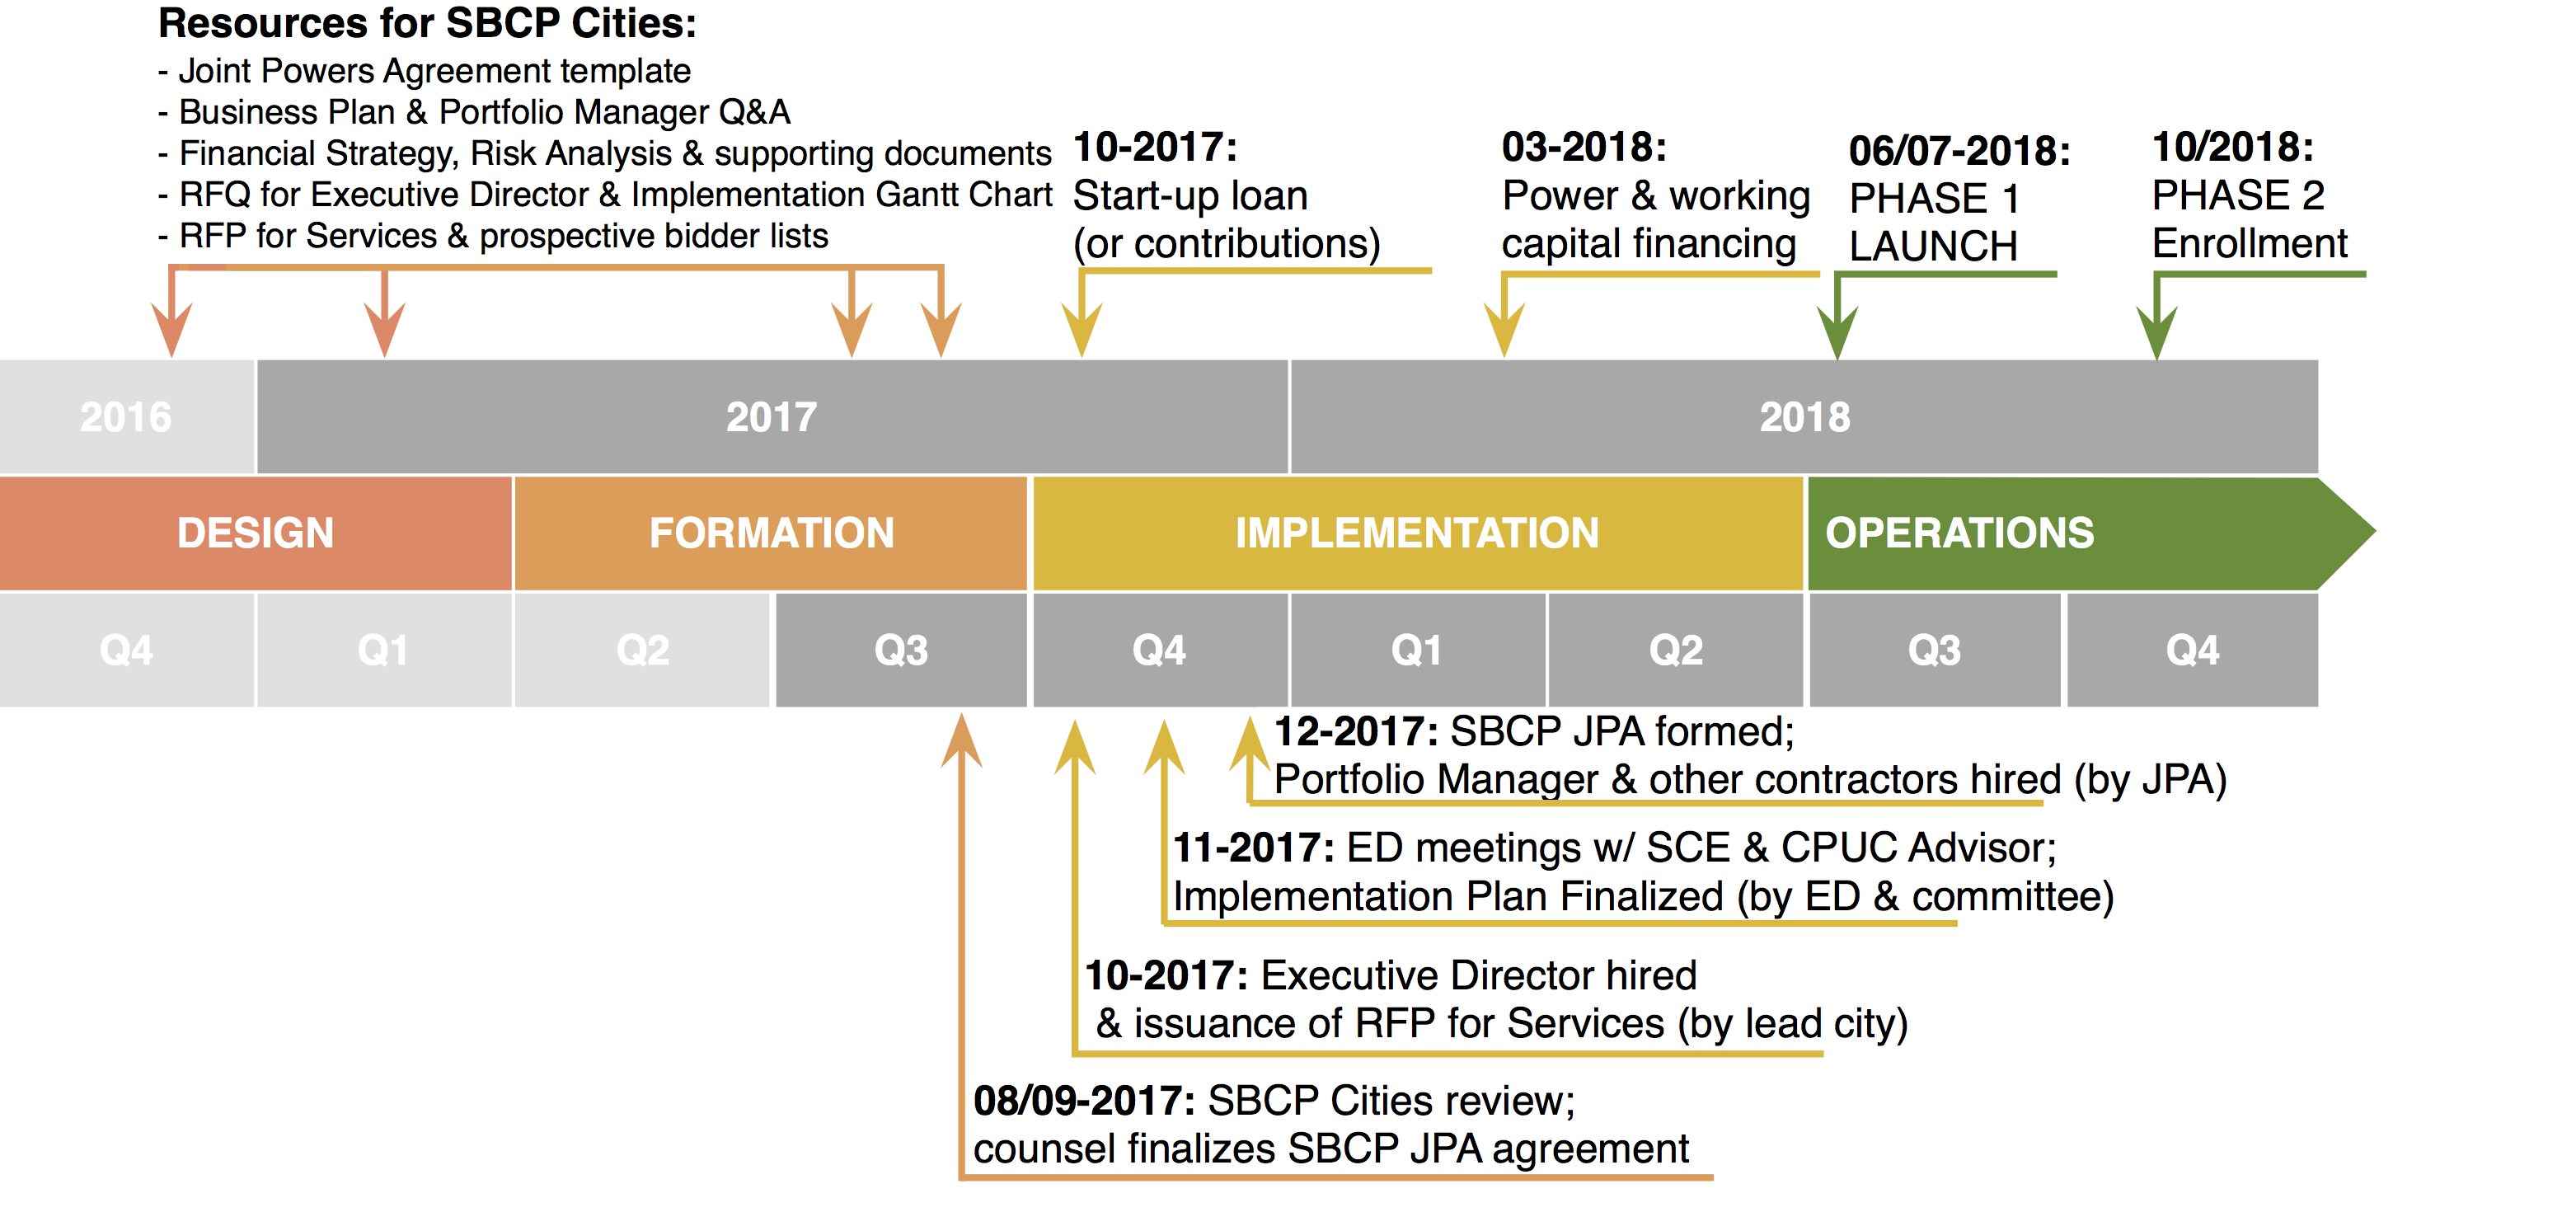 our launch timeline